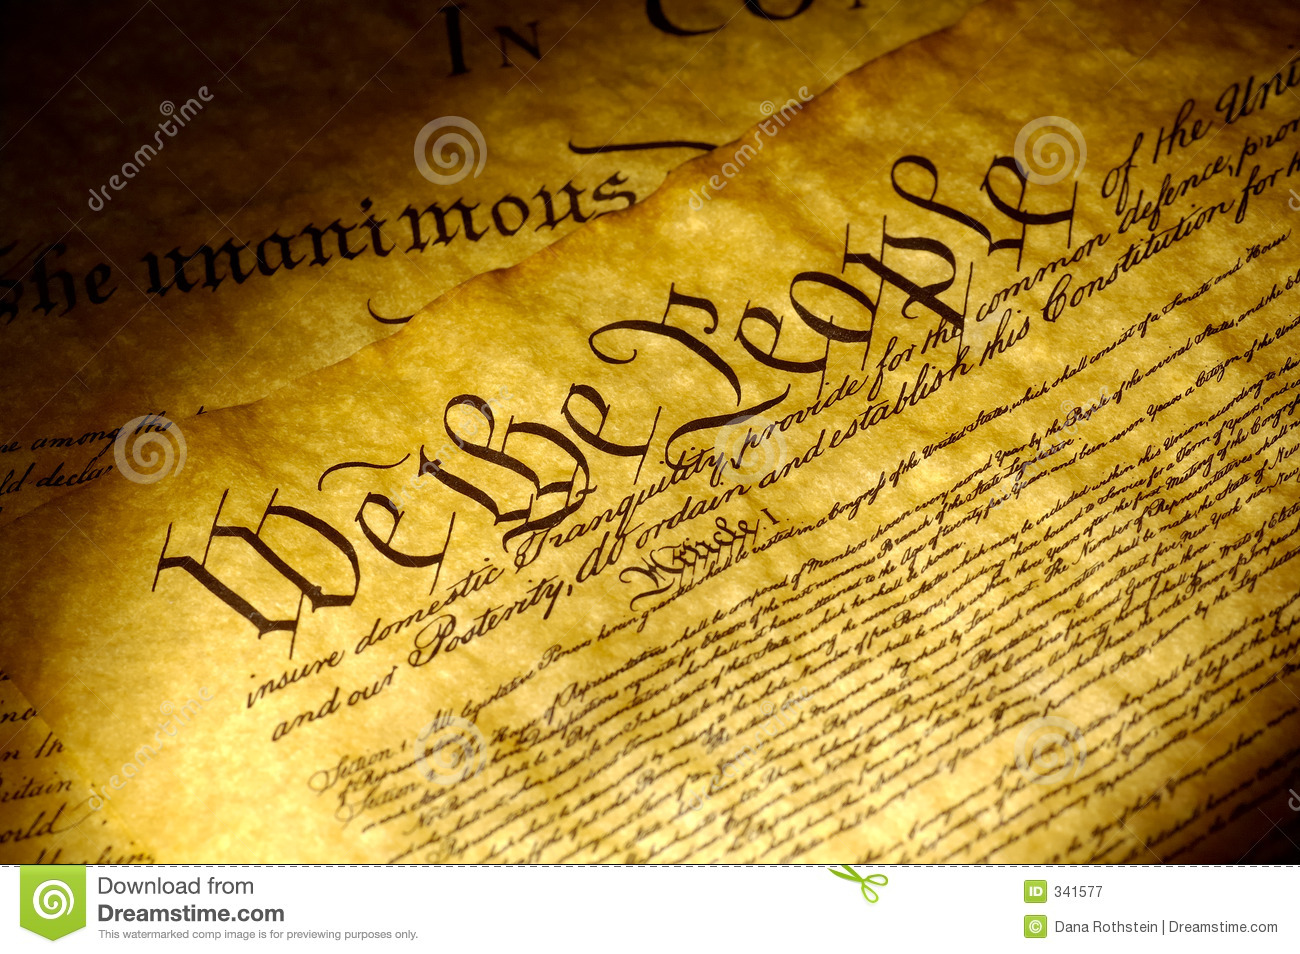 We The People Stock Image. Image Of Free, Justice